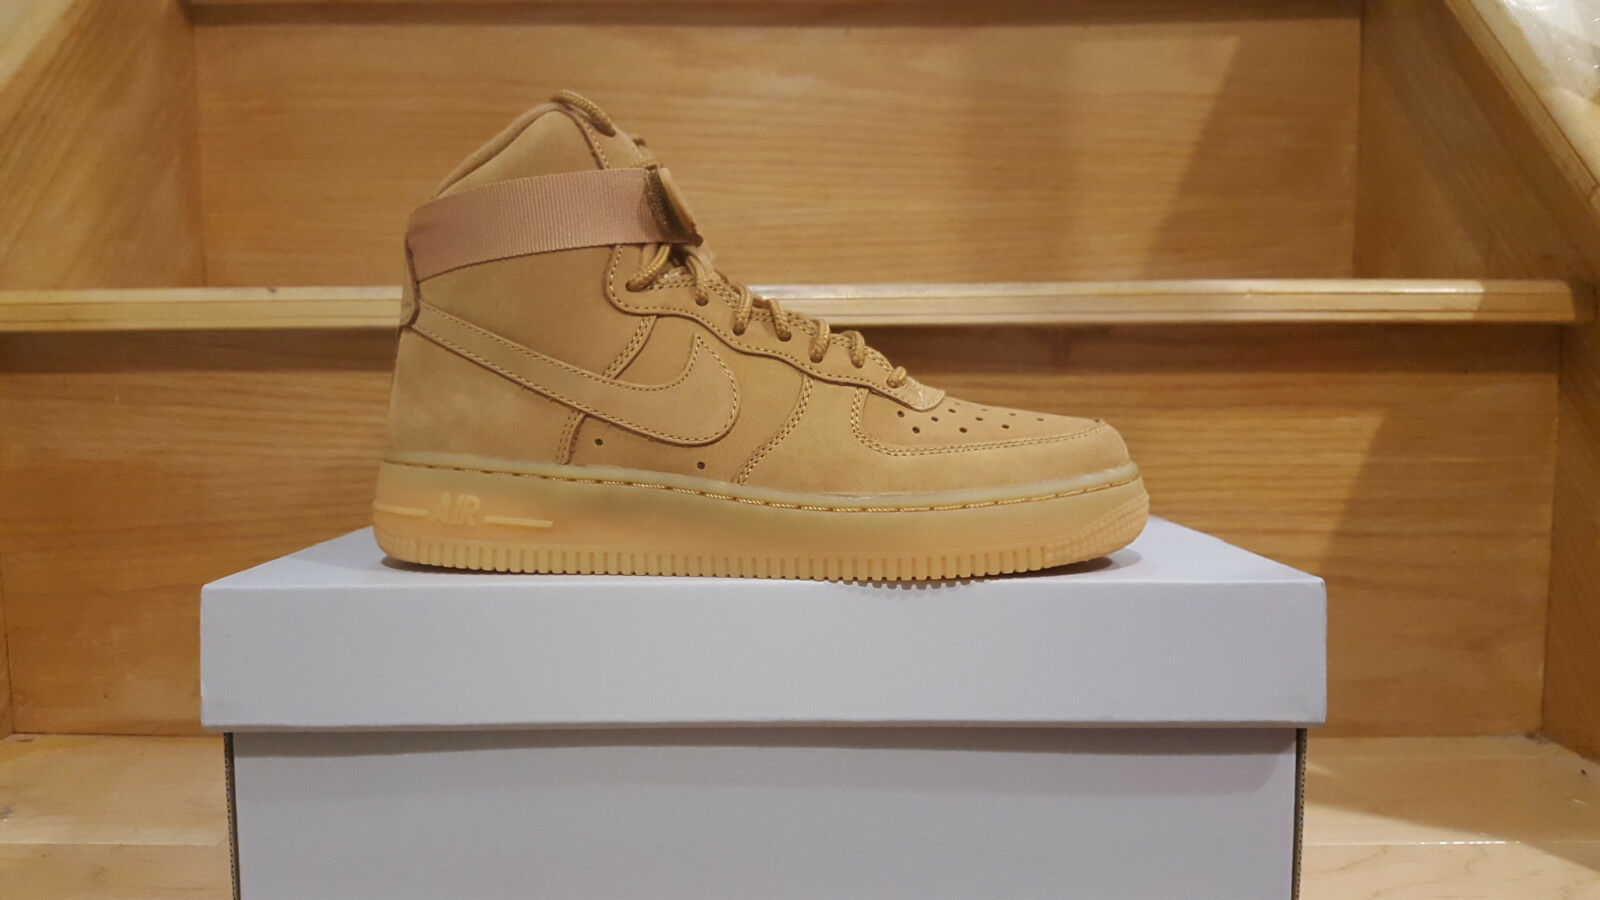 wholesale dealer 9b2c3 8a0e2 high-quality Nike Air Force 1 High  07 LV8 Flax Wheat Collection 806403 200